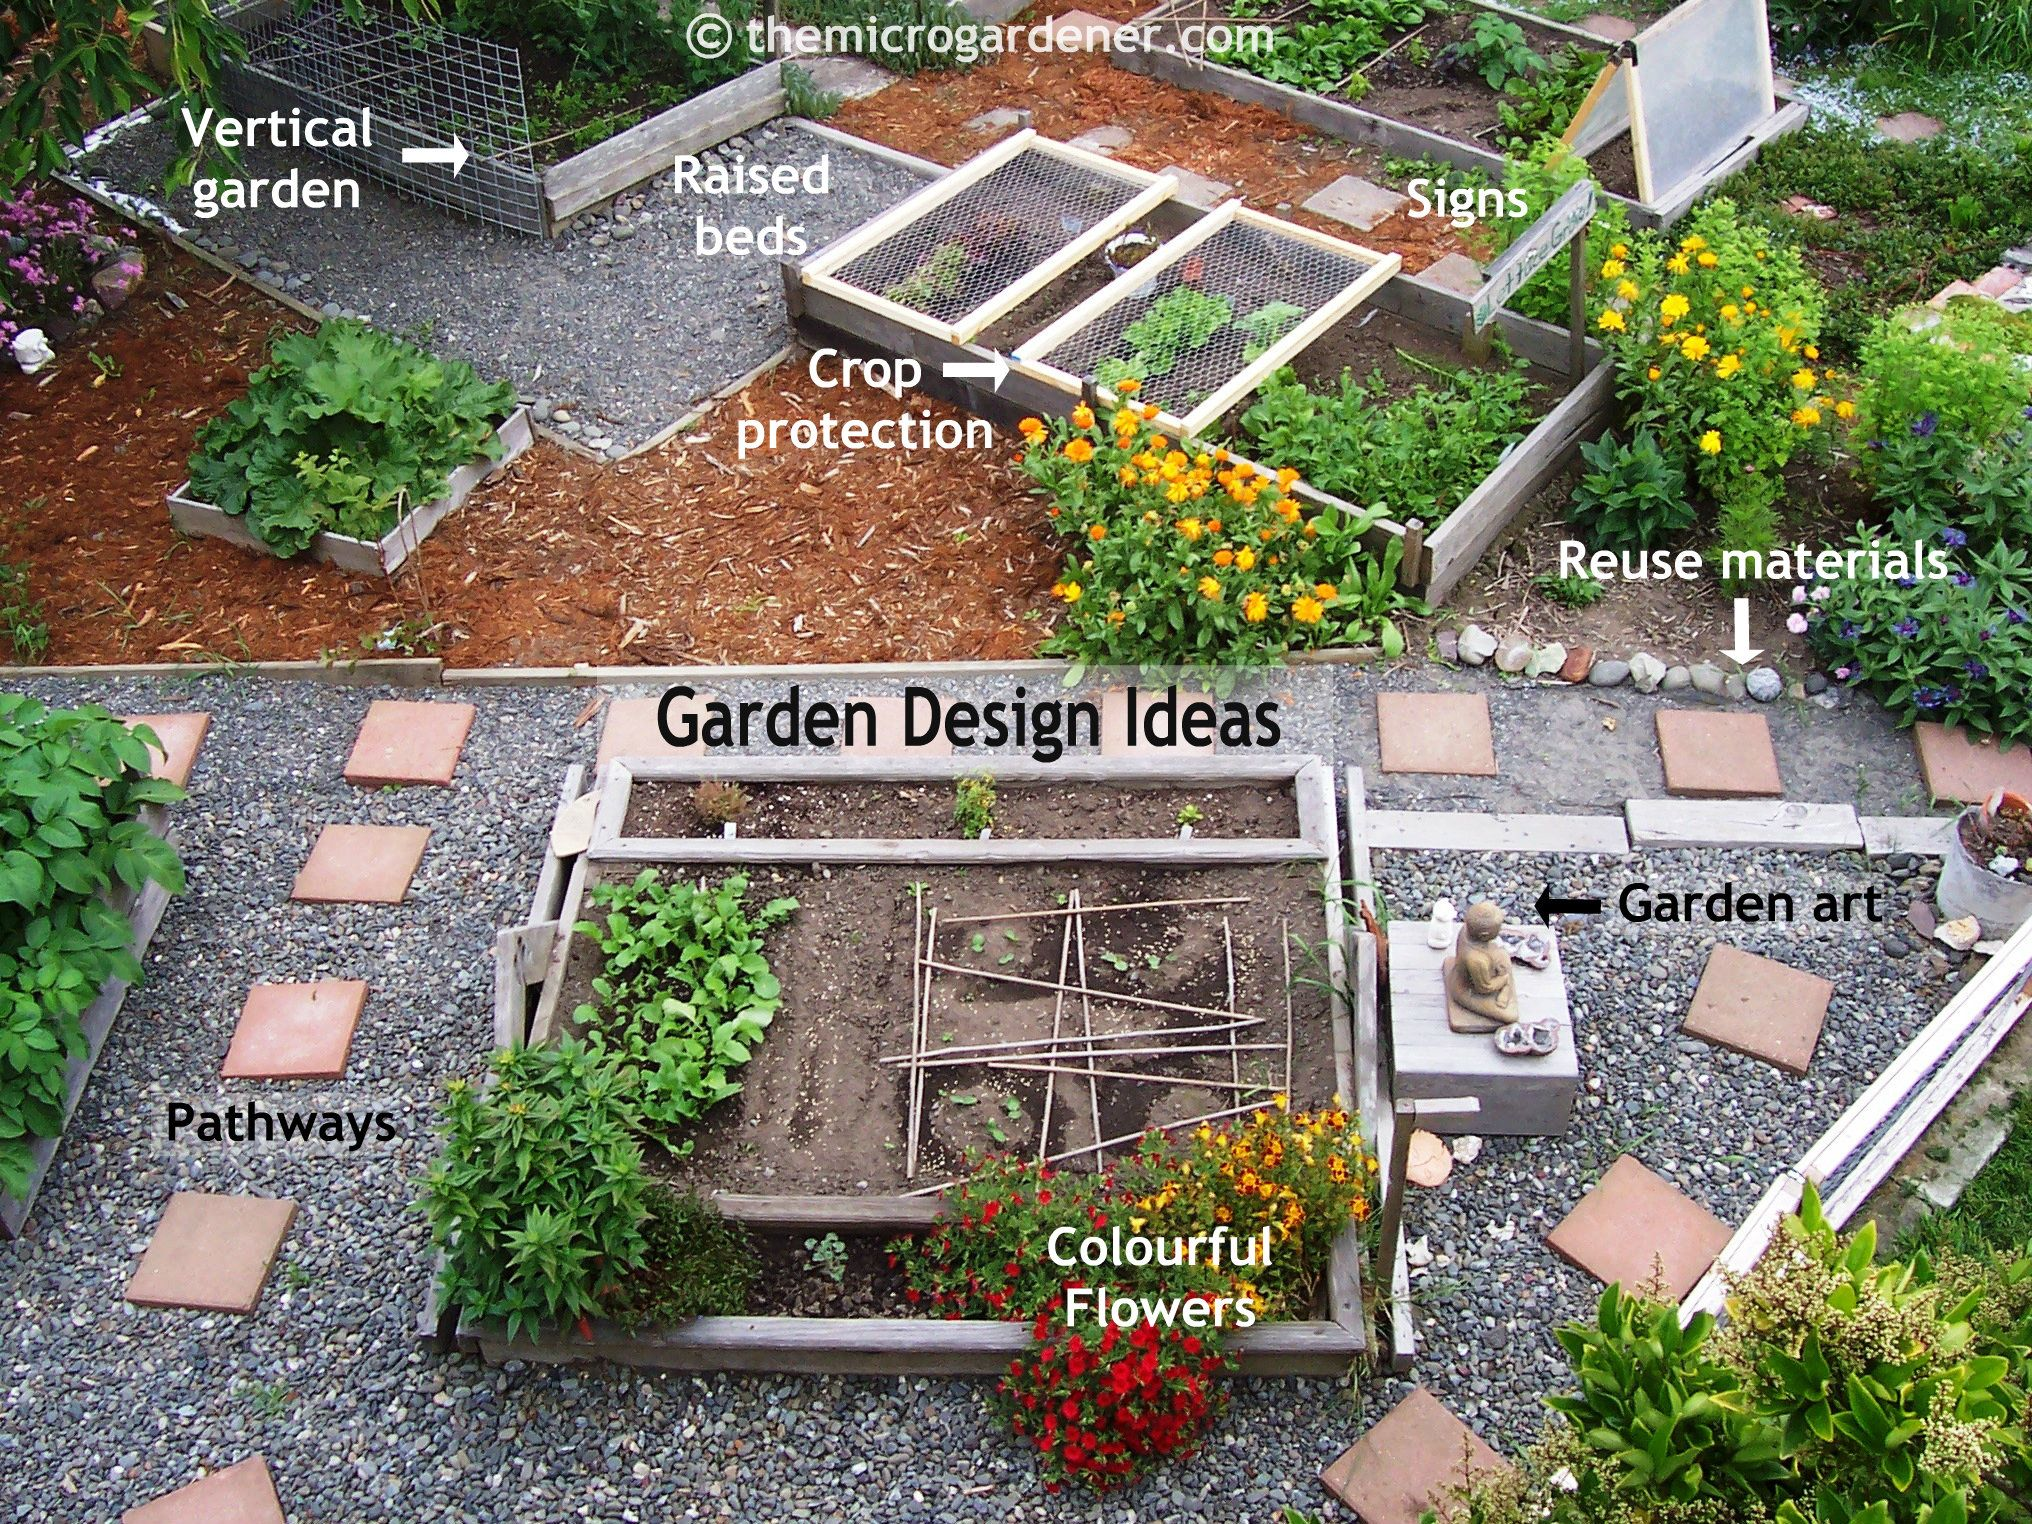 Small garden design ideas on pinterest vertical gardens for Small garden design pictures gallery